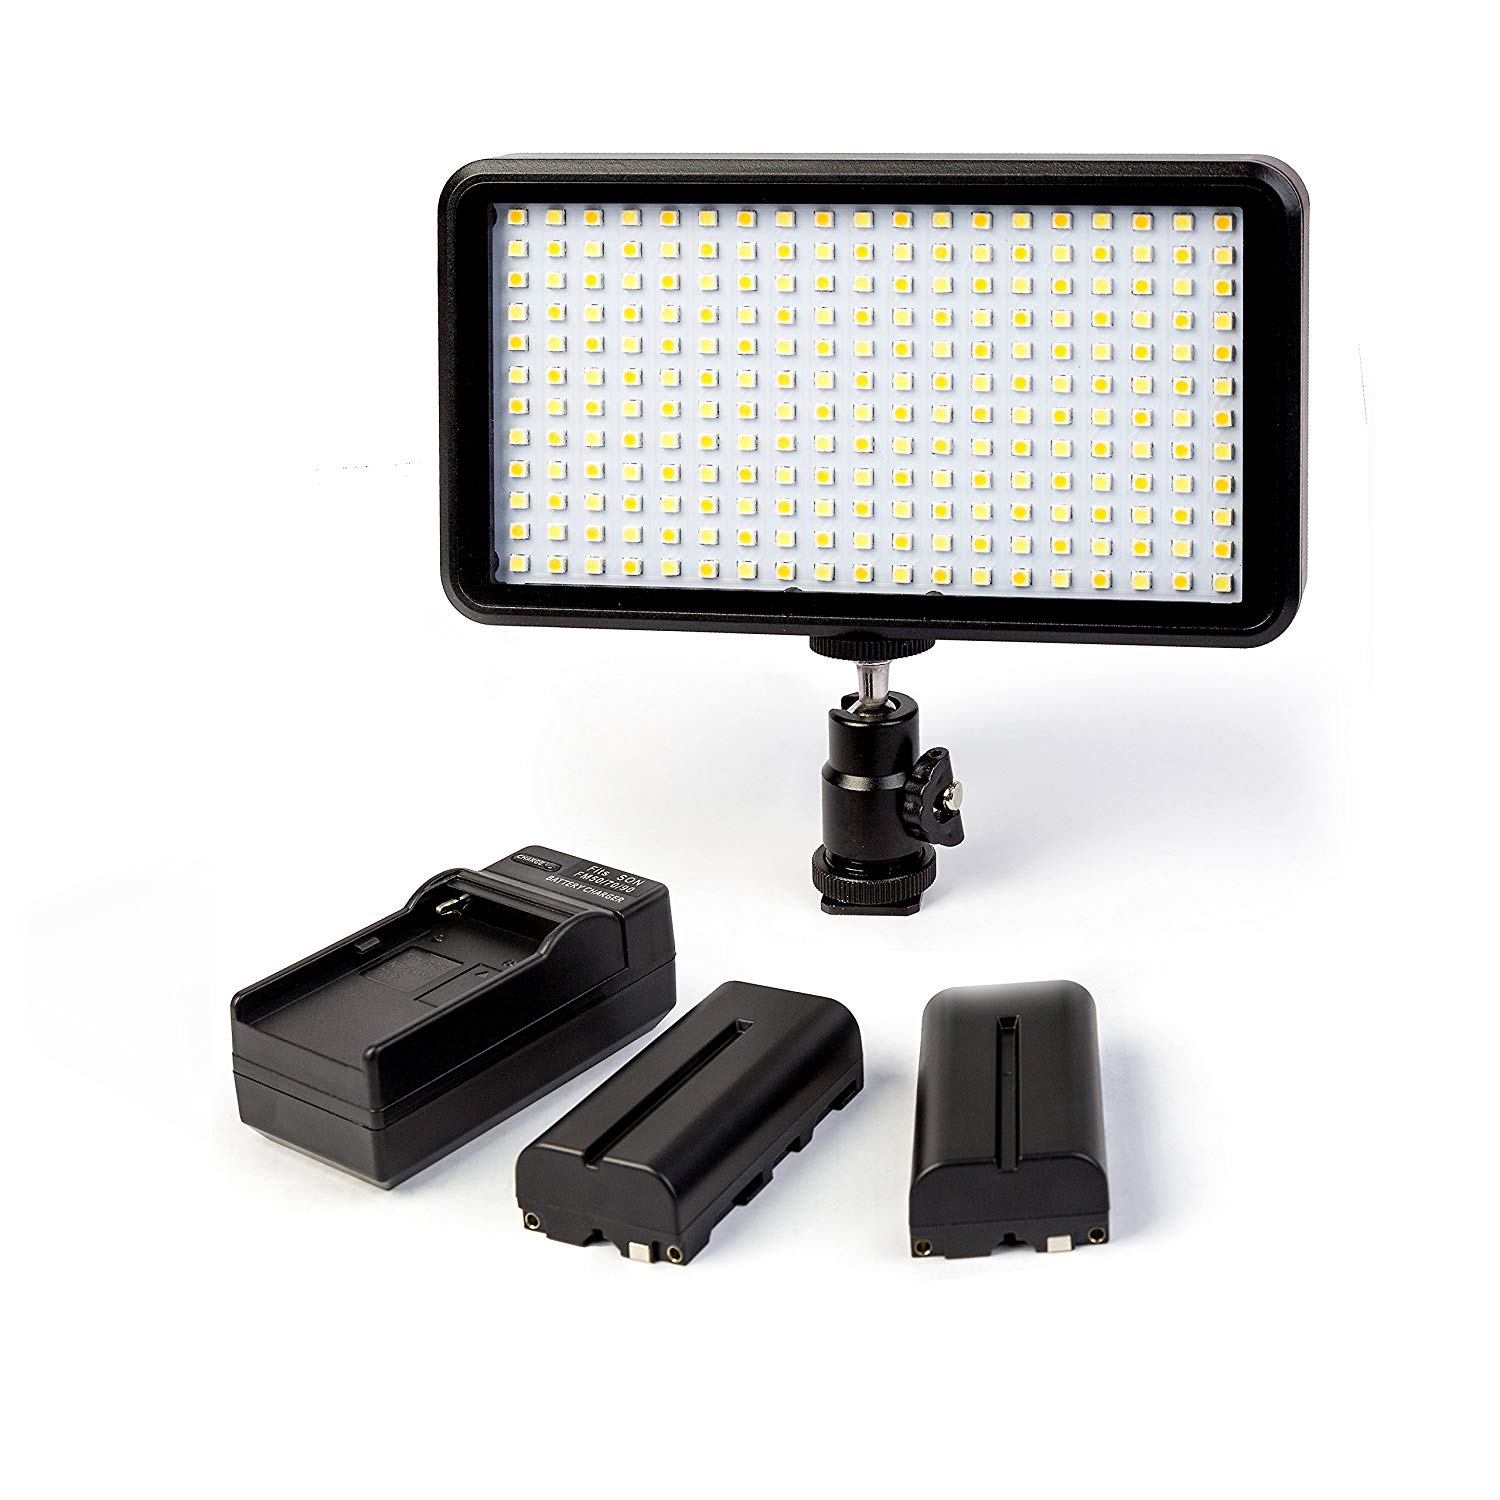 GIGALUMI W228 Video Light